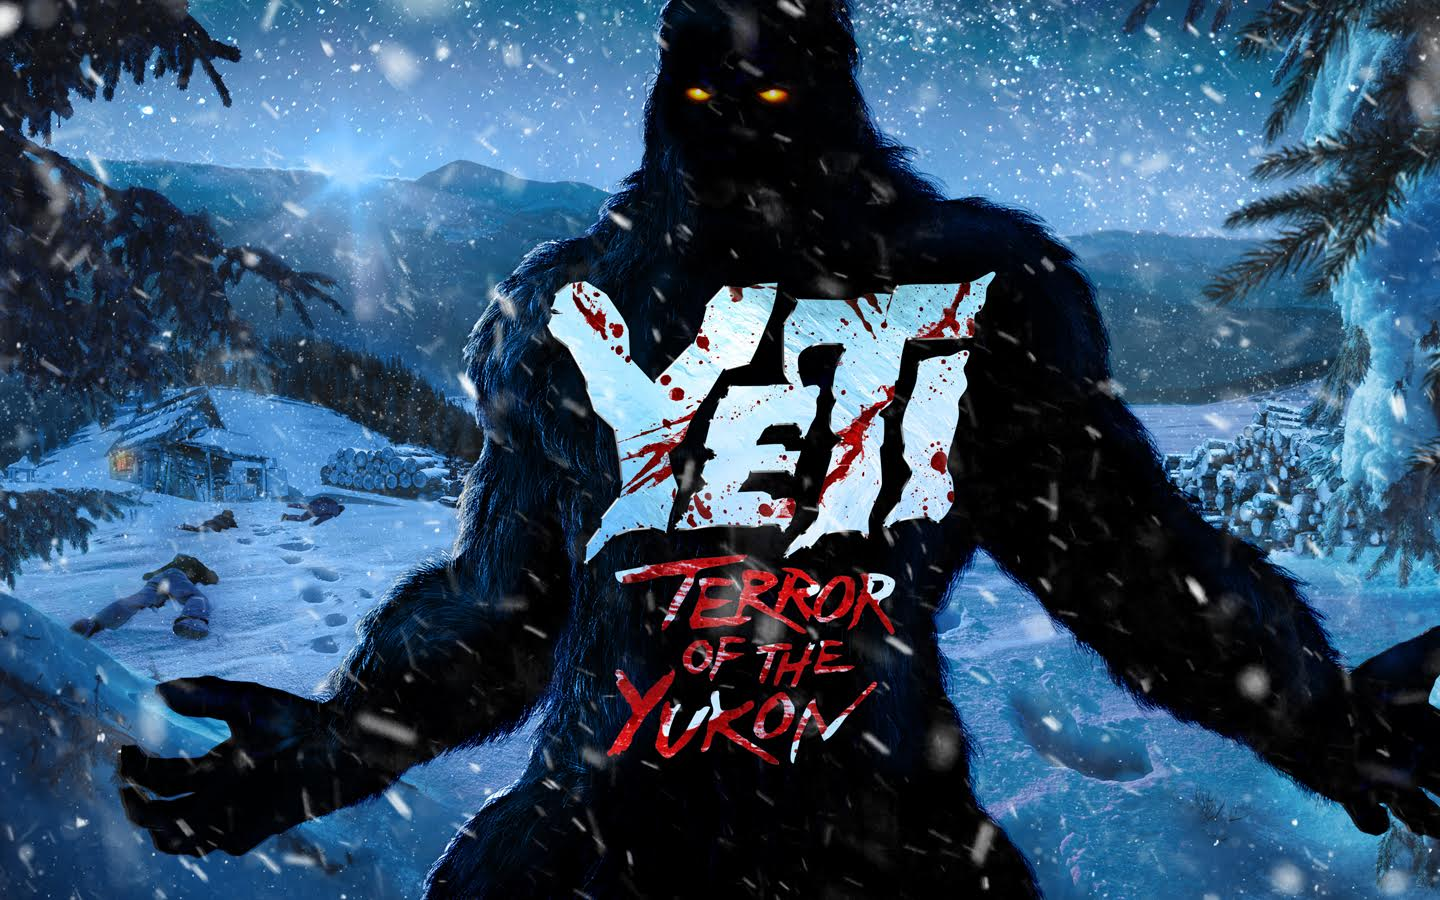 [News] Yeti: Terror of the Yukon coming to HHN Orlando